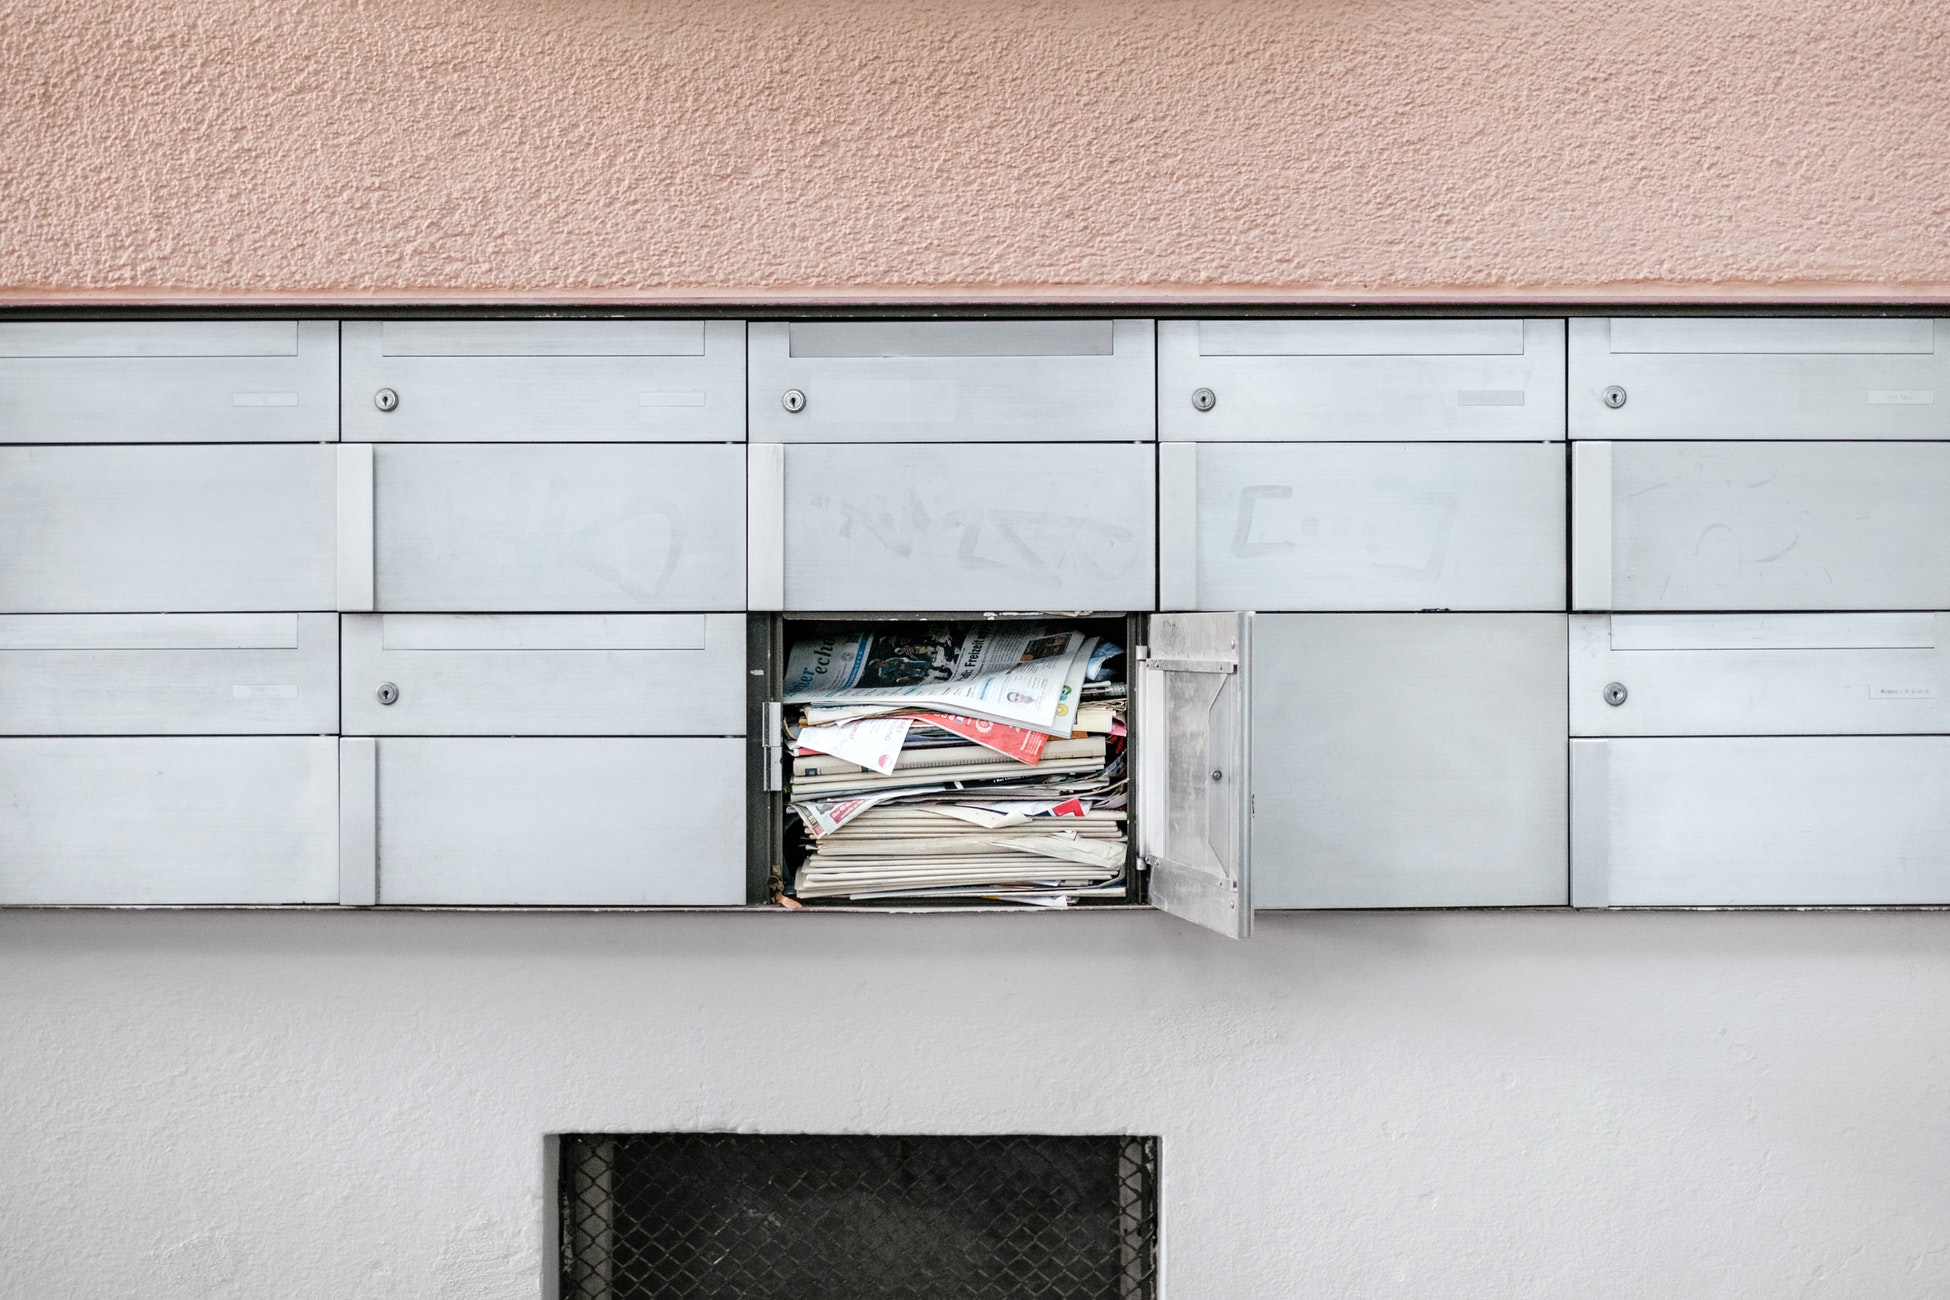 A cement wall with metal mailboxes on it with one open with mail inside of it.